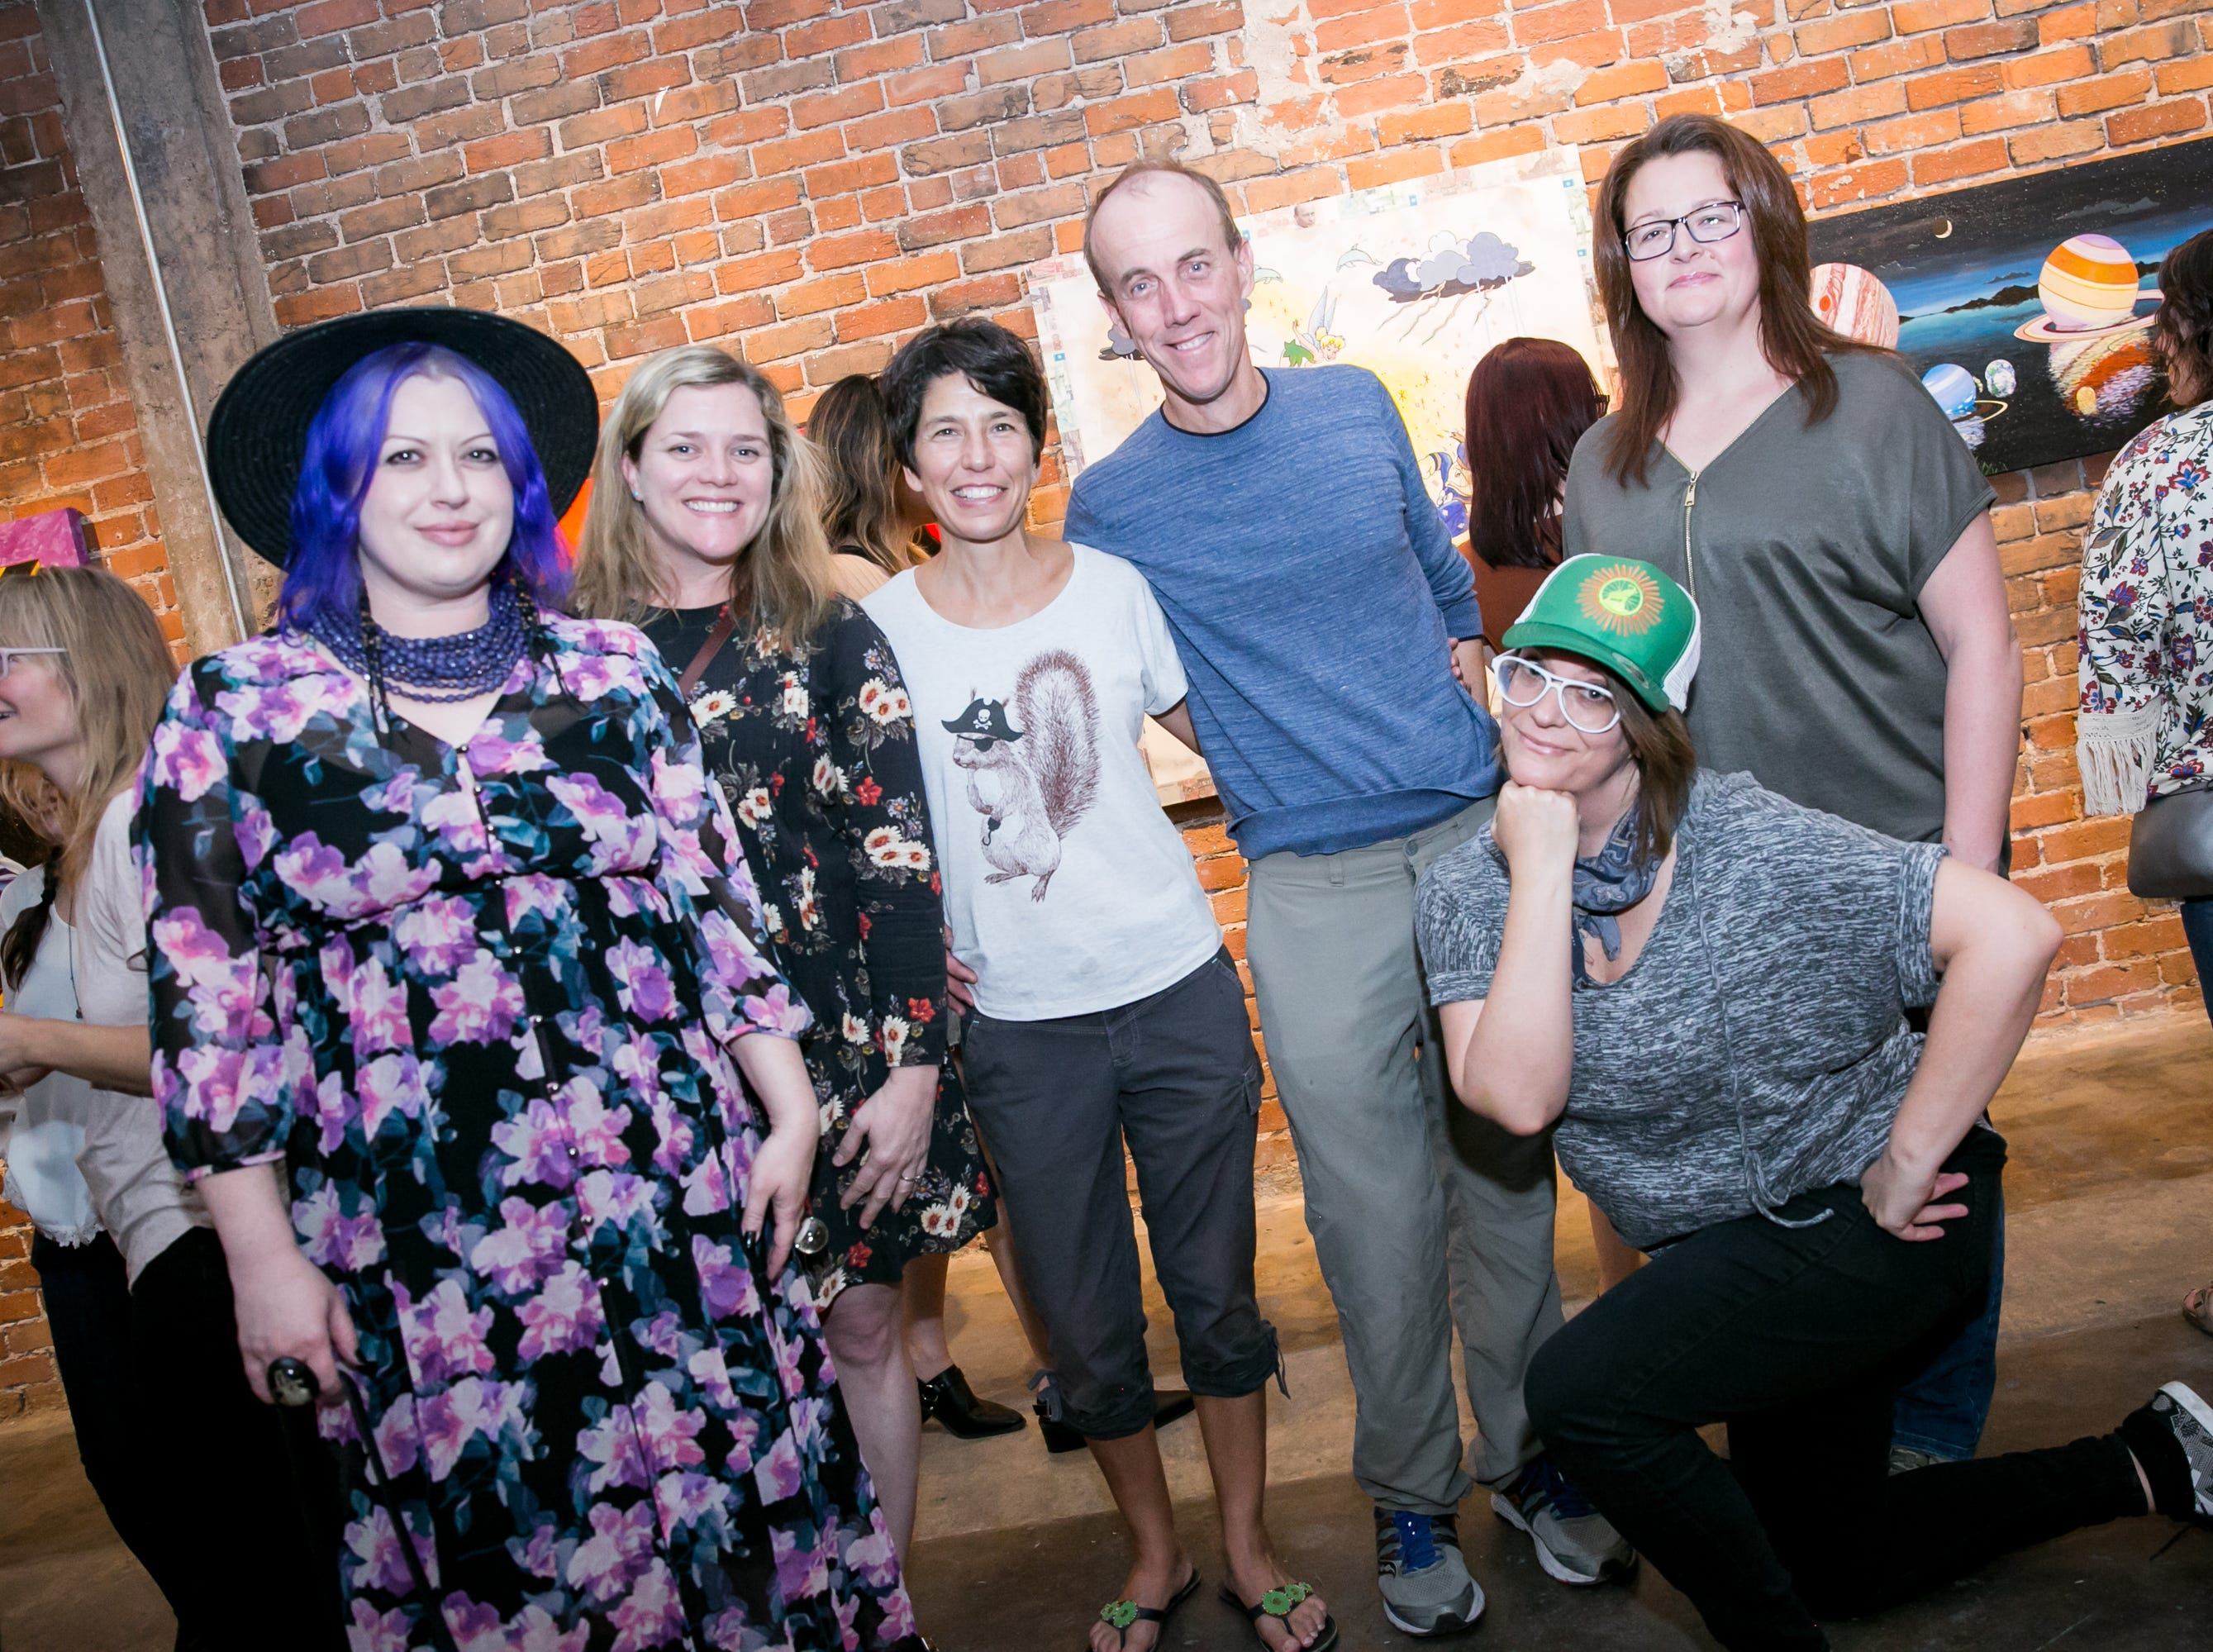 This group had fun at Chaos Theory 19 at Legend City Studios during First Friday on October 5, 2018.